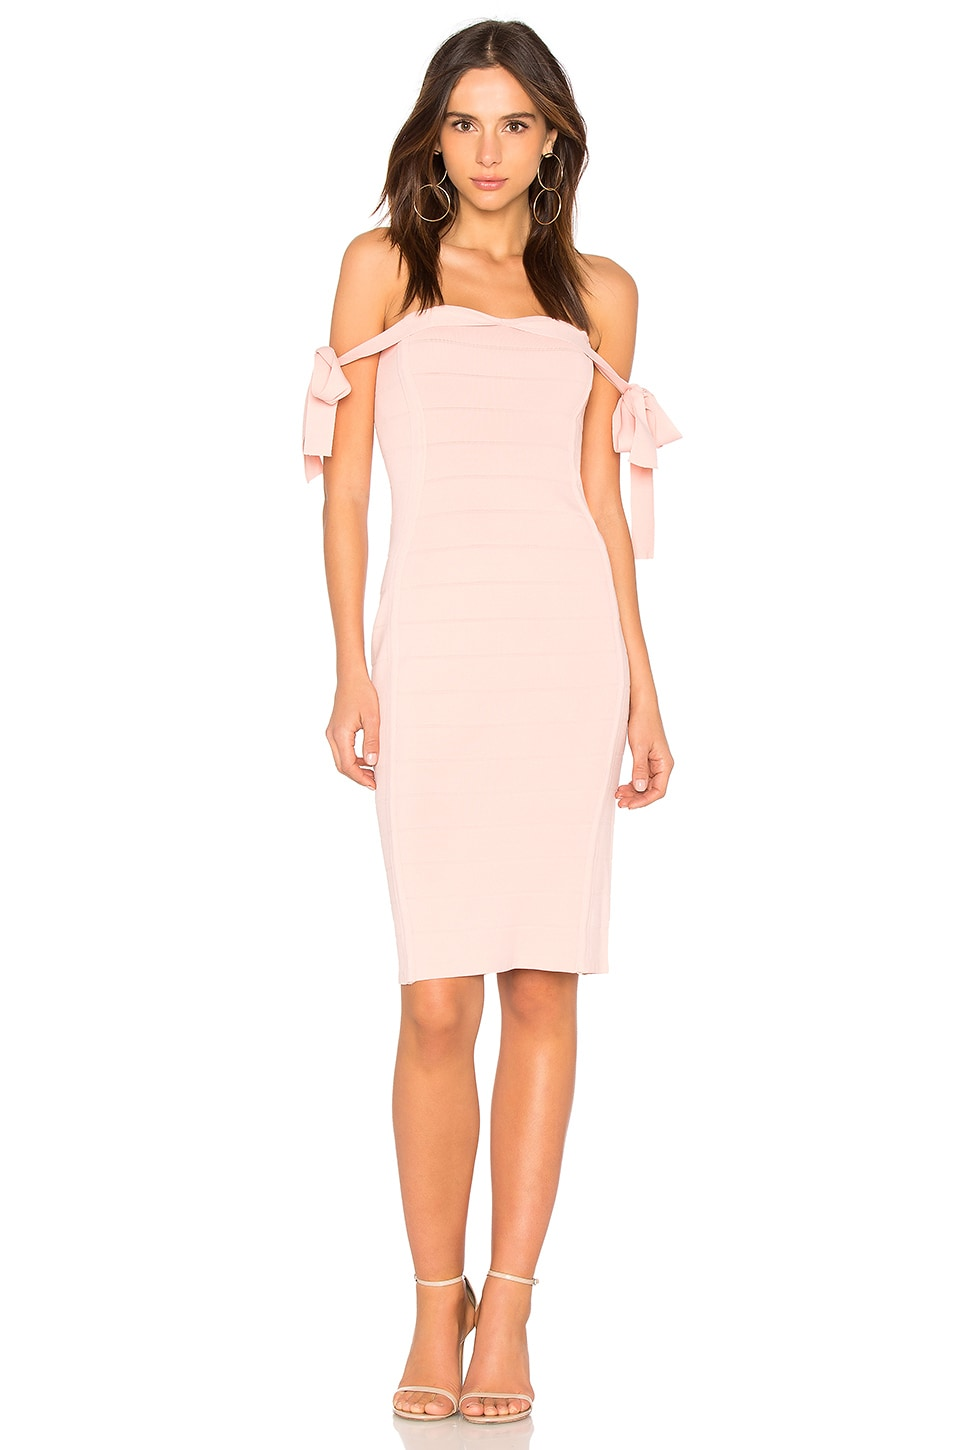 Endless Rose Off the Shoulder Dress in Nude Pink